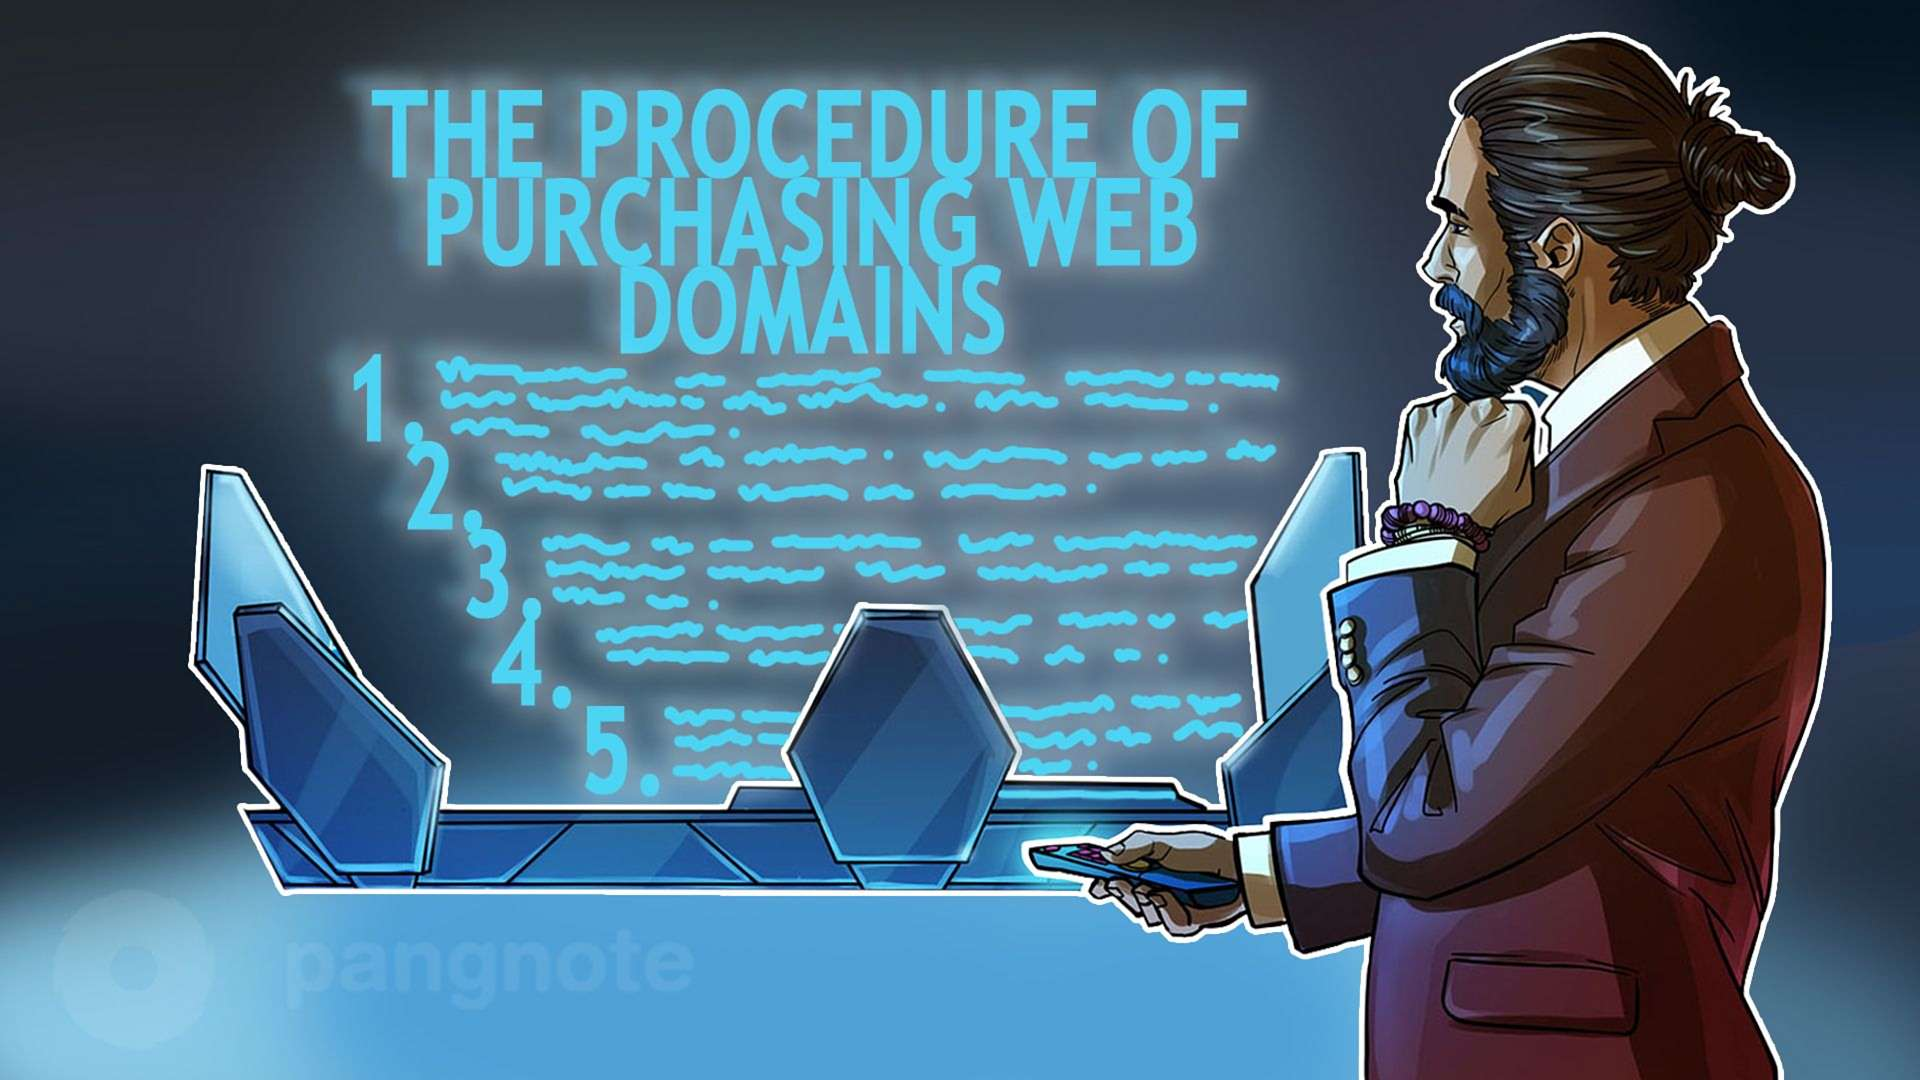 The procedure of purchasing web domains